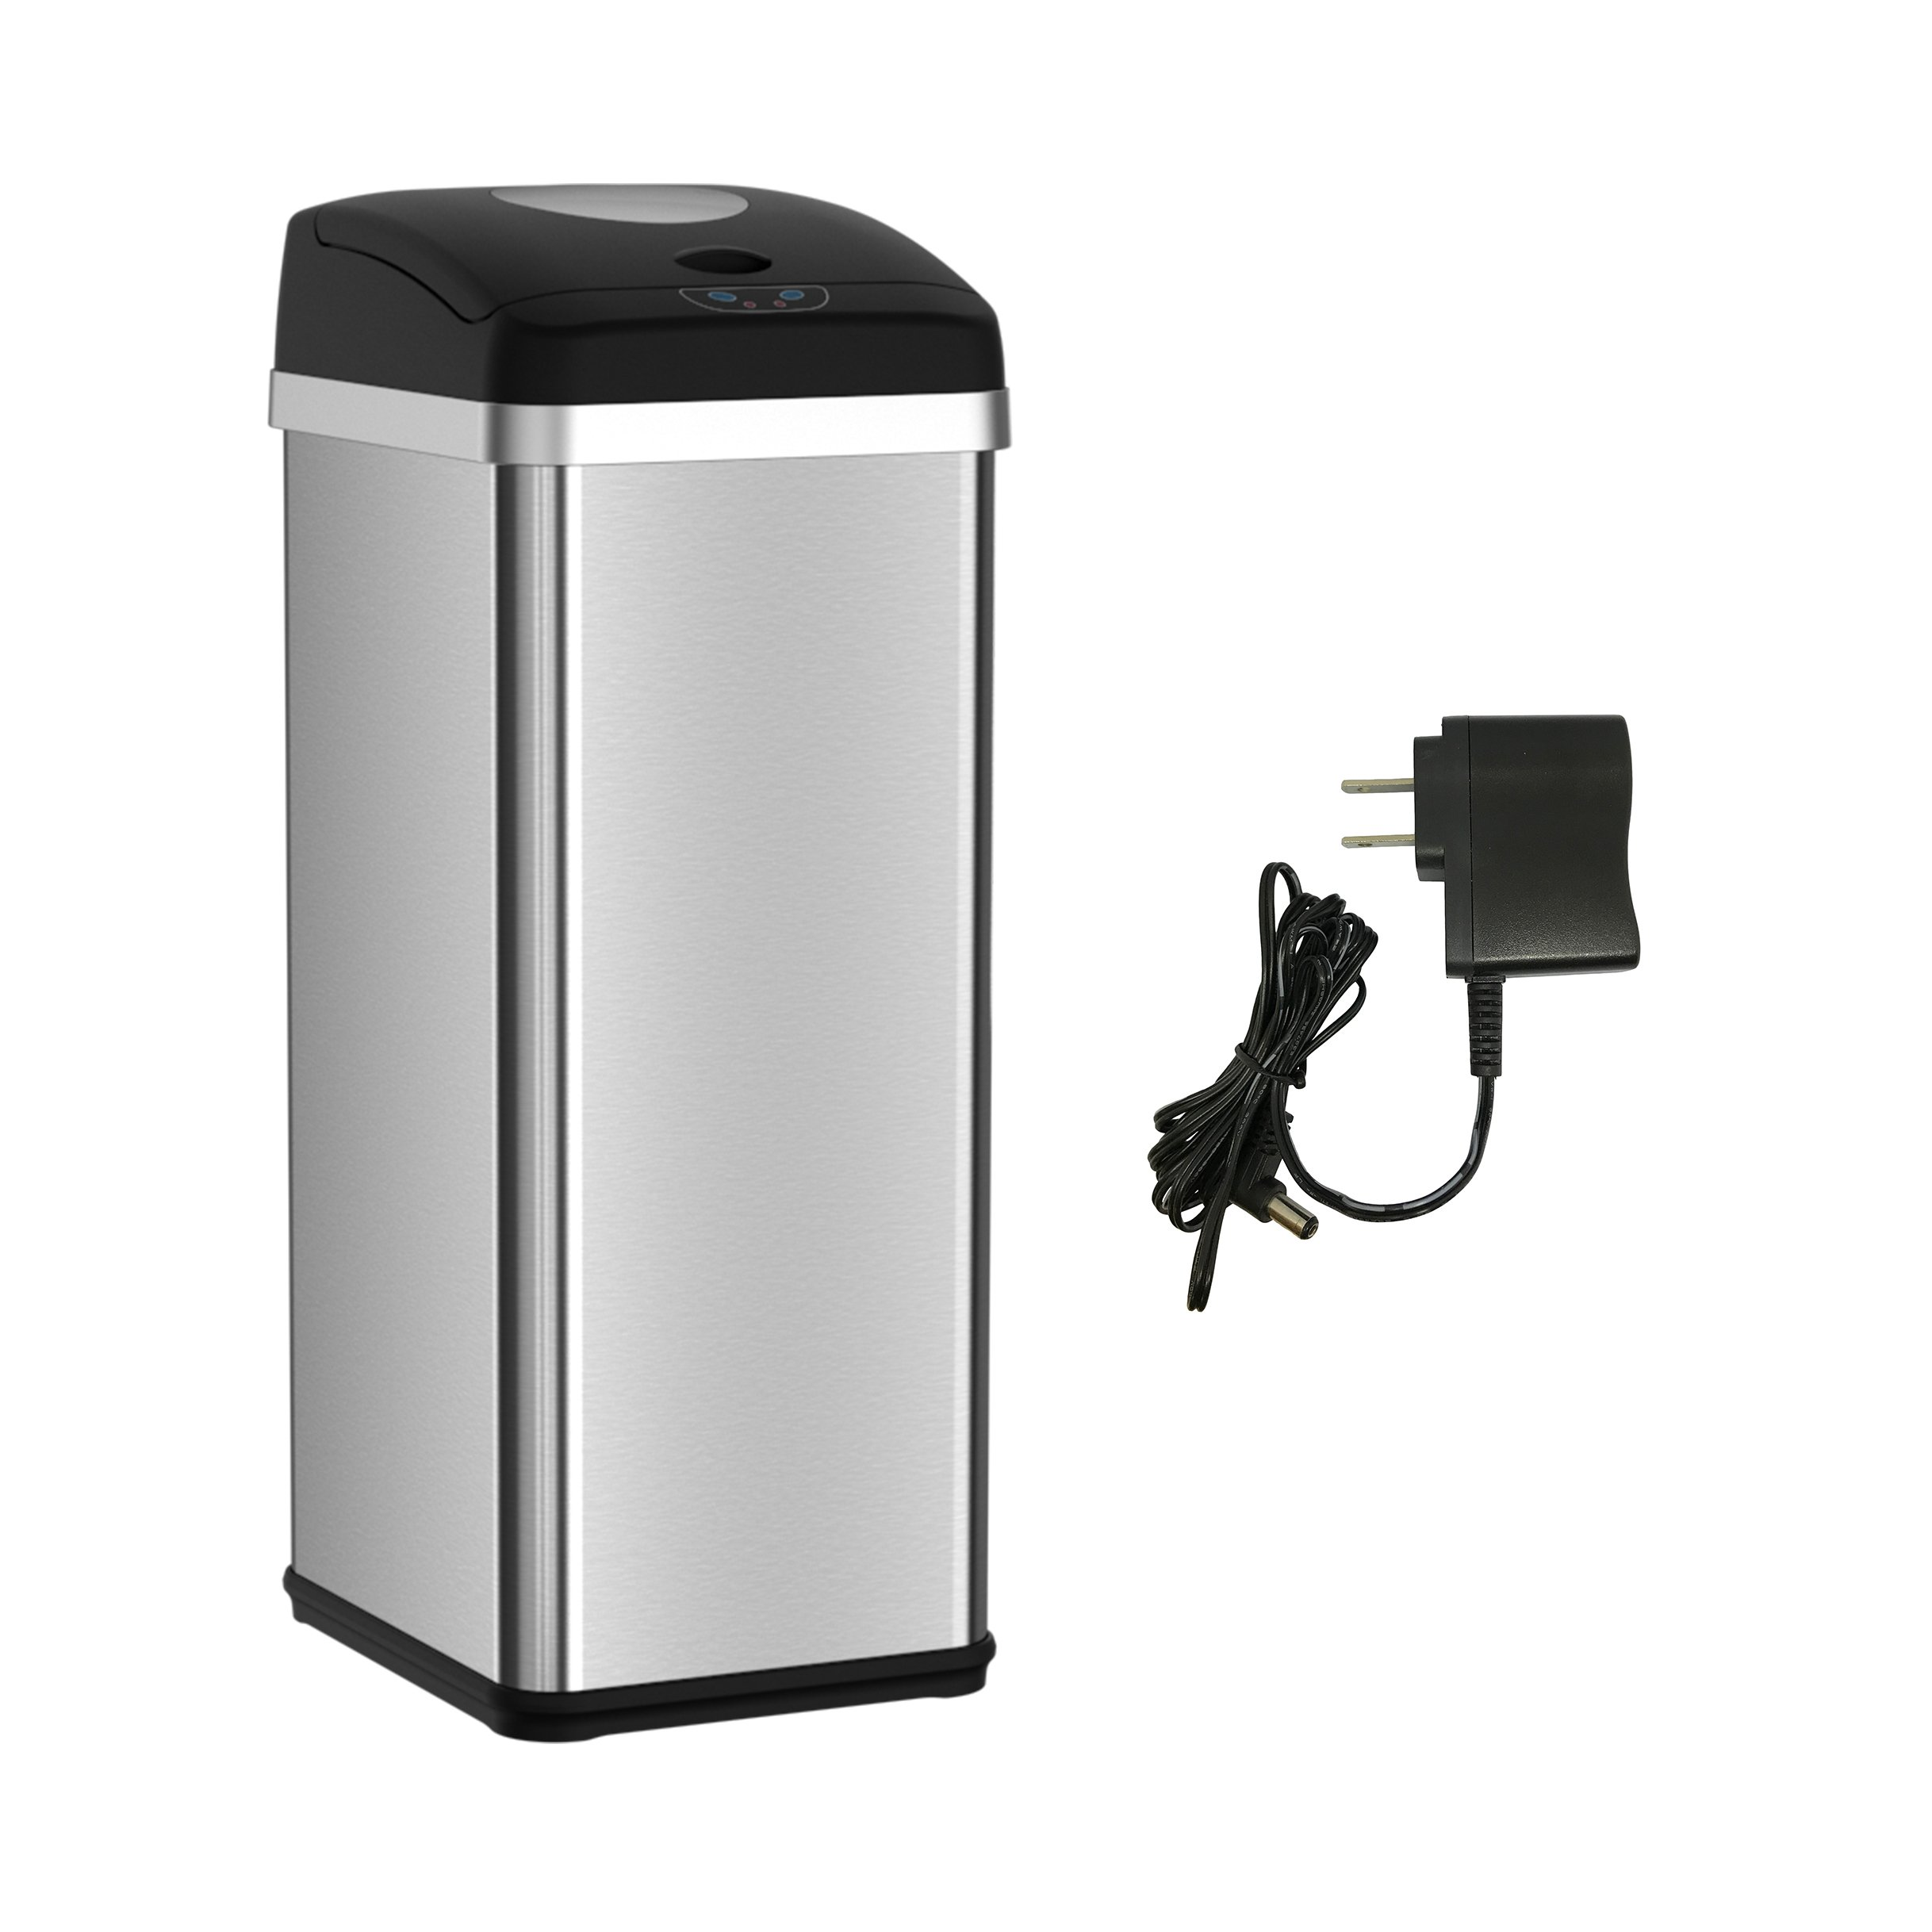 iTouchless Squeeze Trash Compactor with Touchless Lid and AC Adapter – Compact Waste, Save Space – Stainless Steel – 49 Liter / 13 Gallon